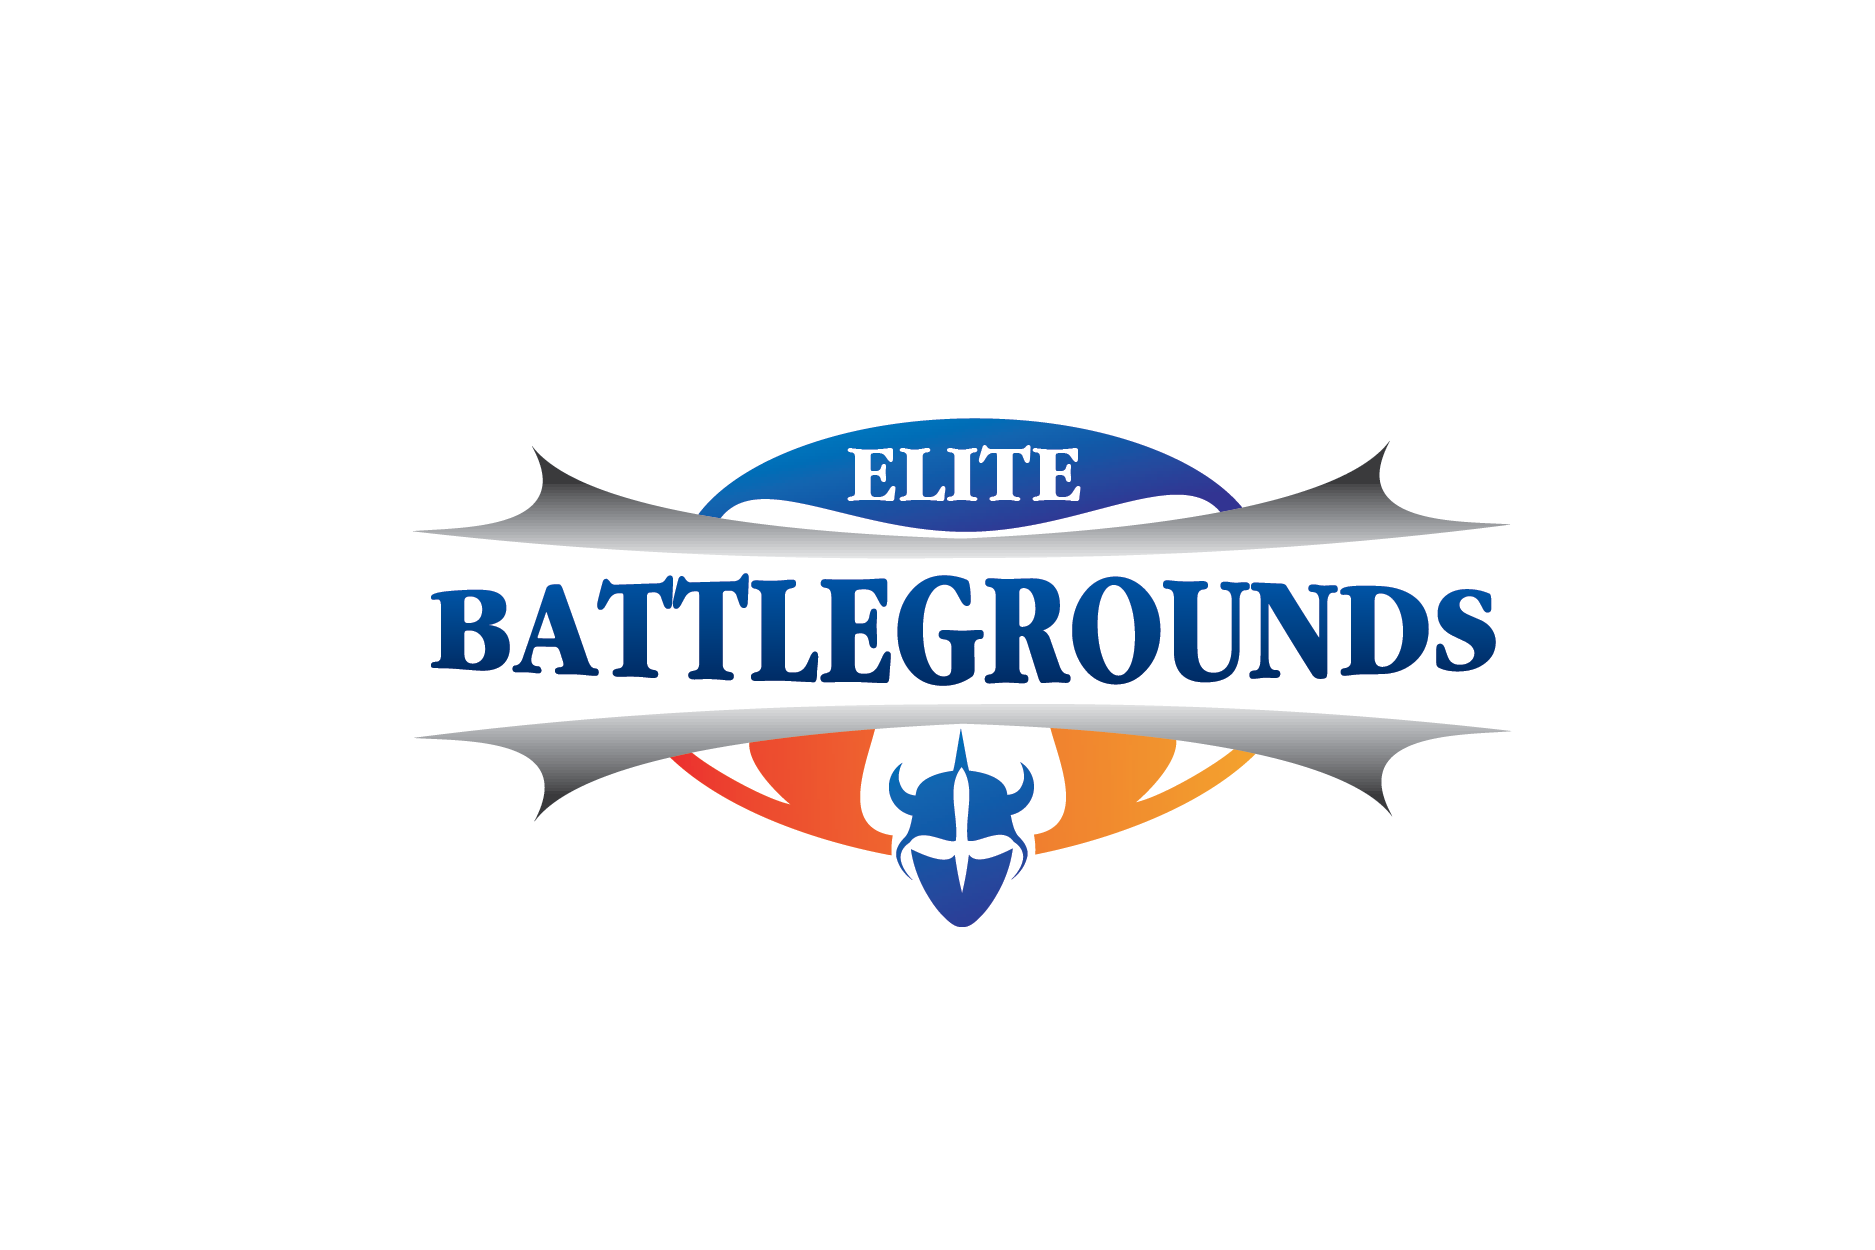 Logo Design by Digital Designs - Entry No. 93 in the Logo Design Contest Creative Logo Design for Elite Battlegrounds.